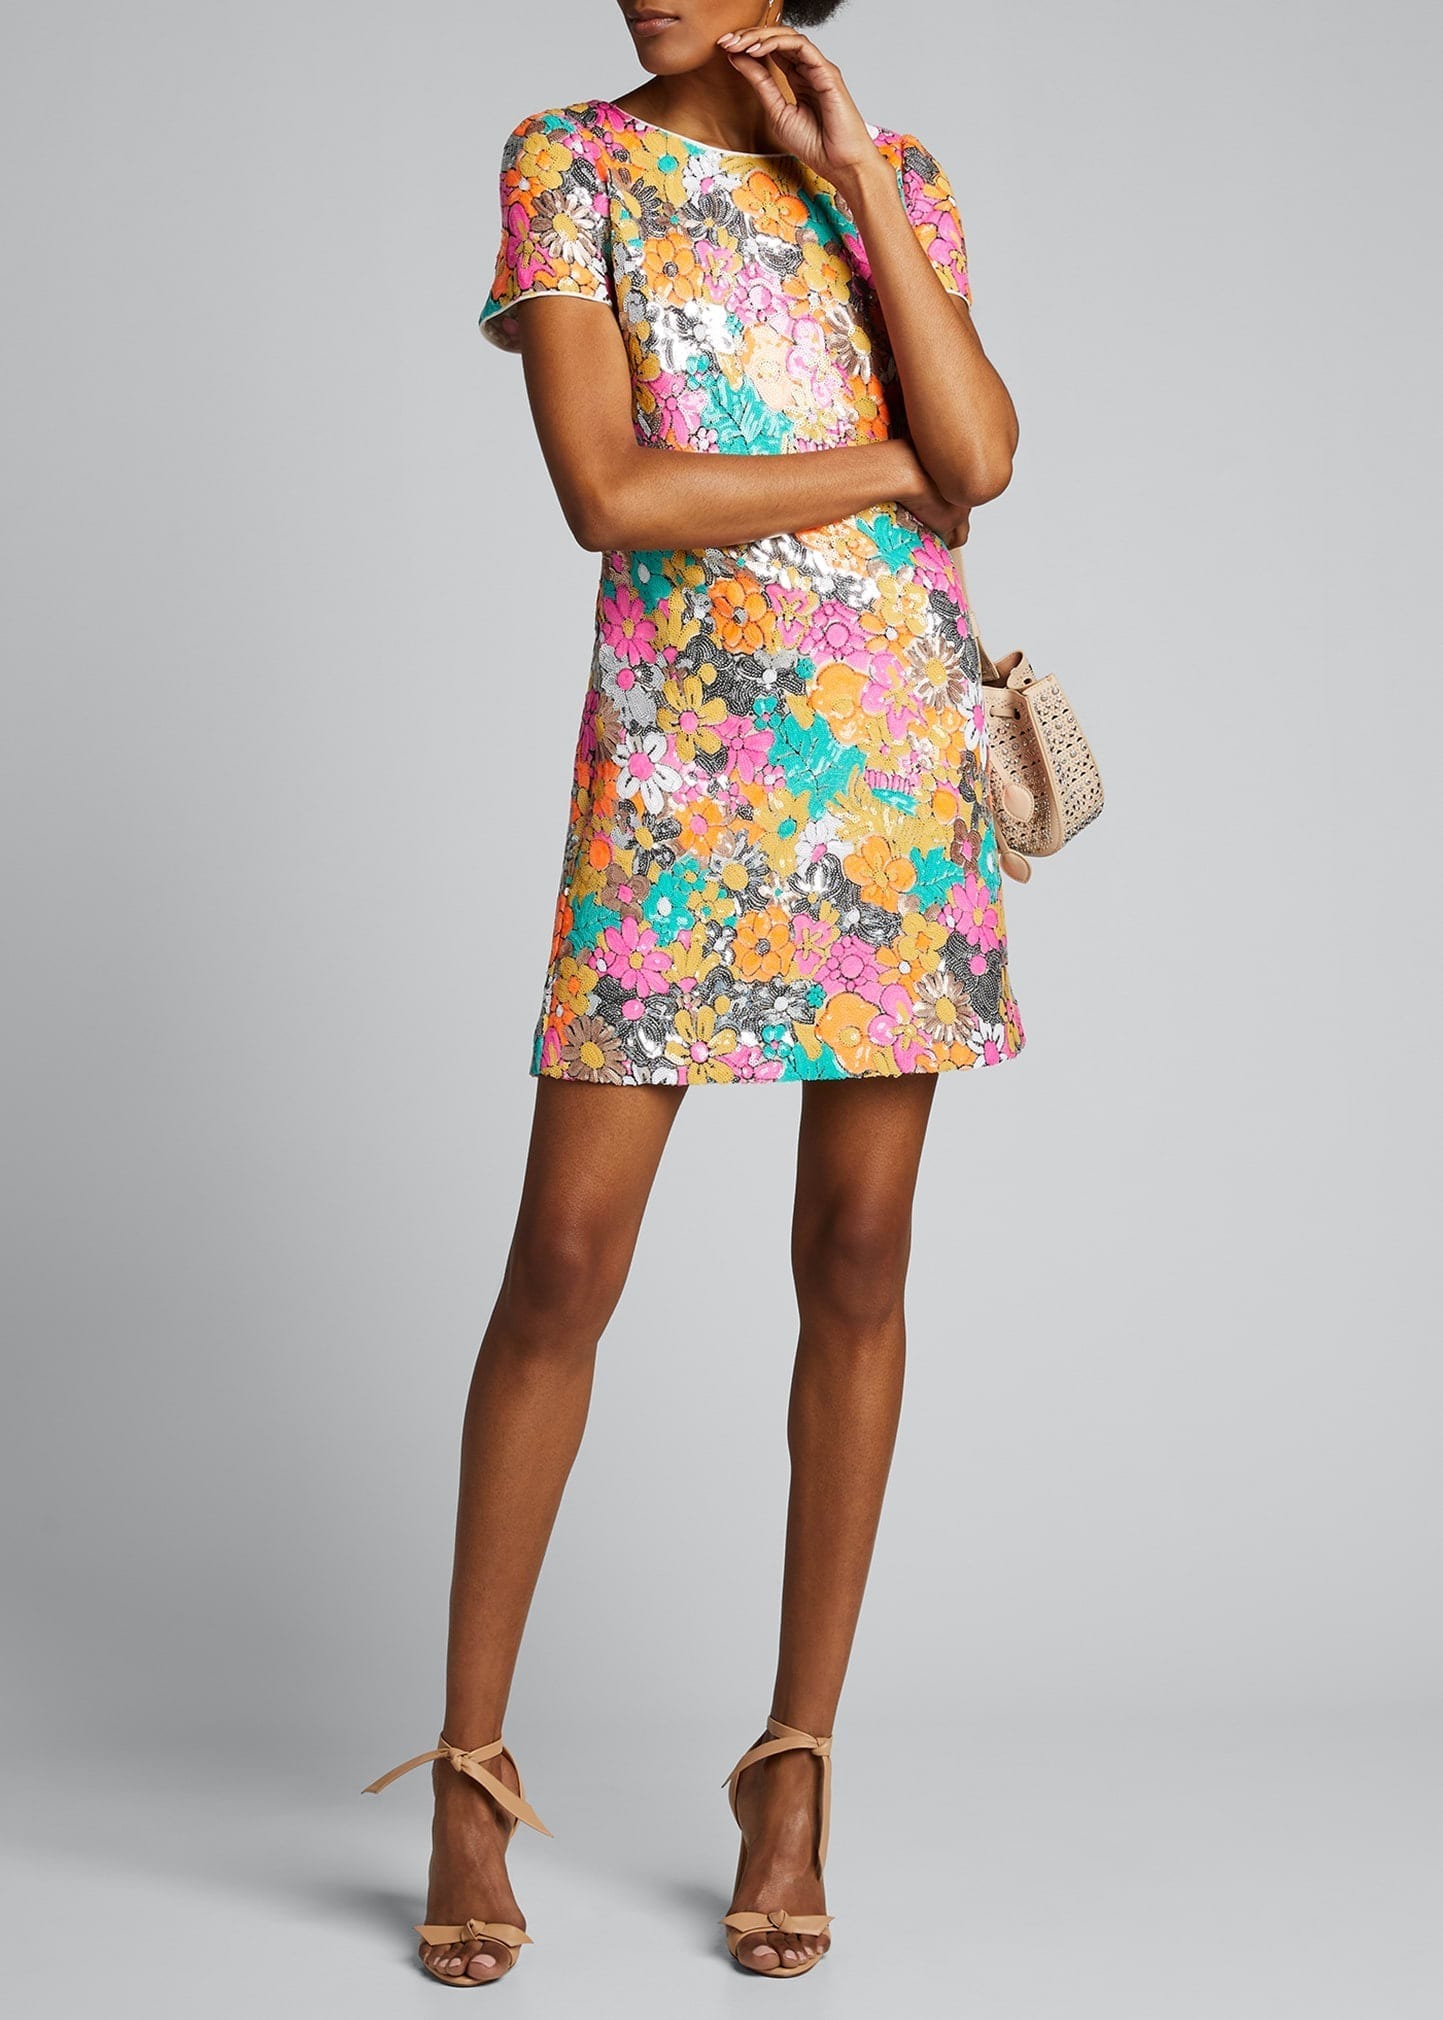 MILLY Bea Floral Sequined Sheath Dress